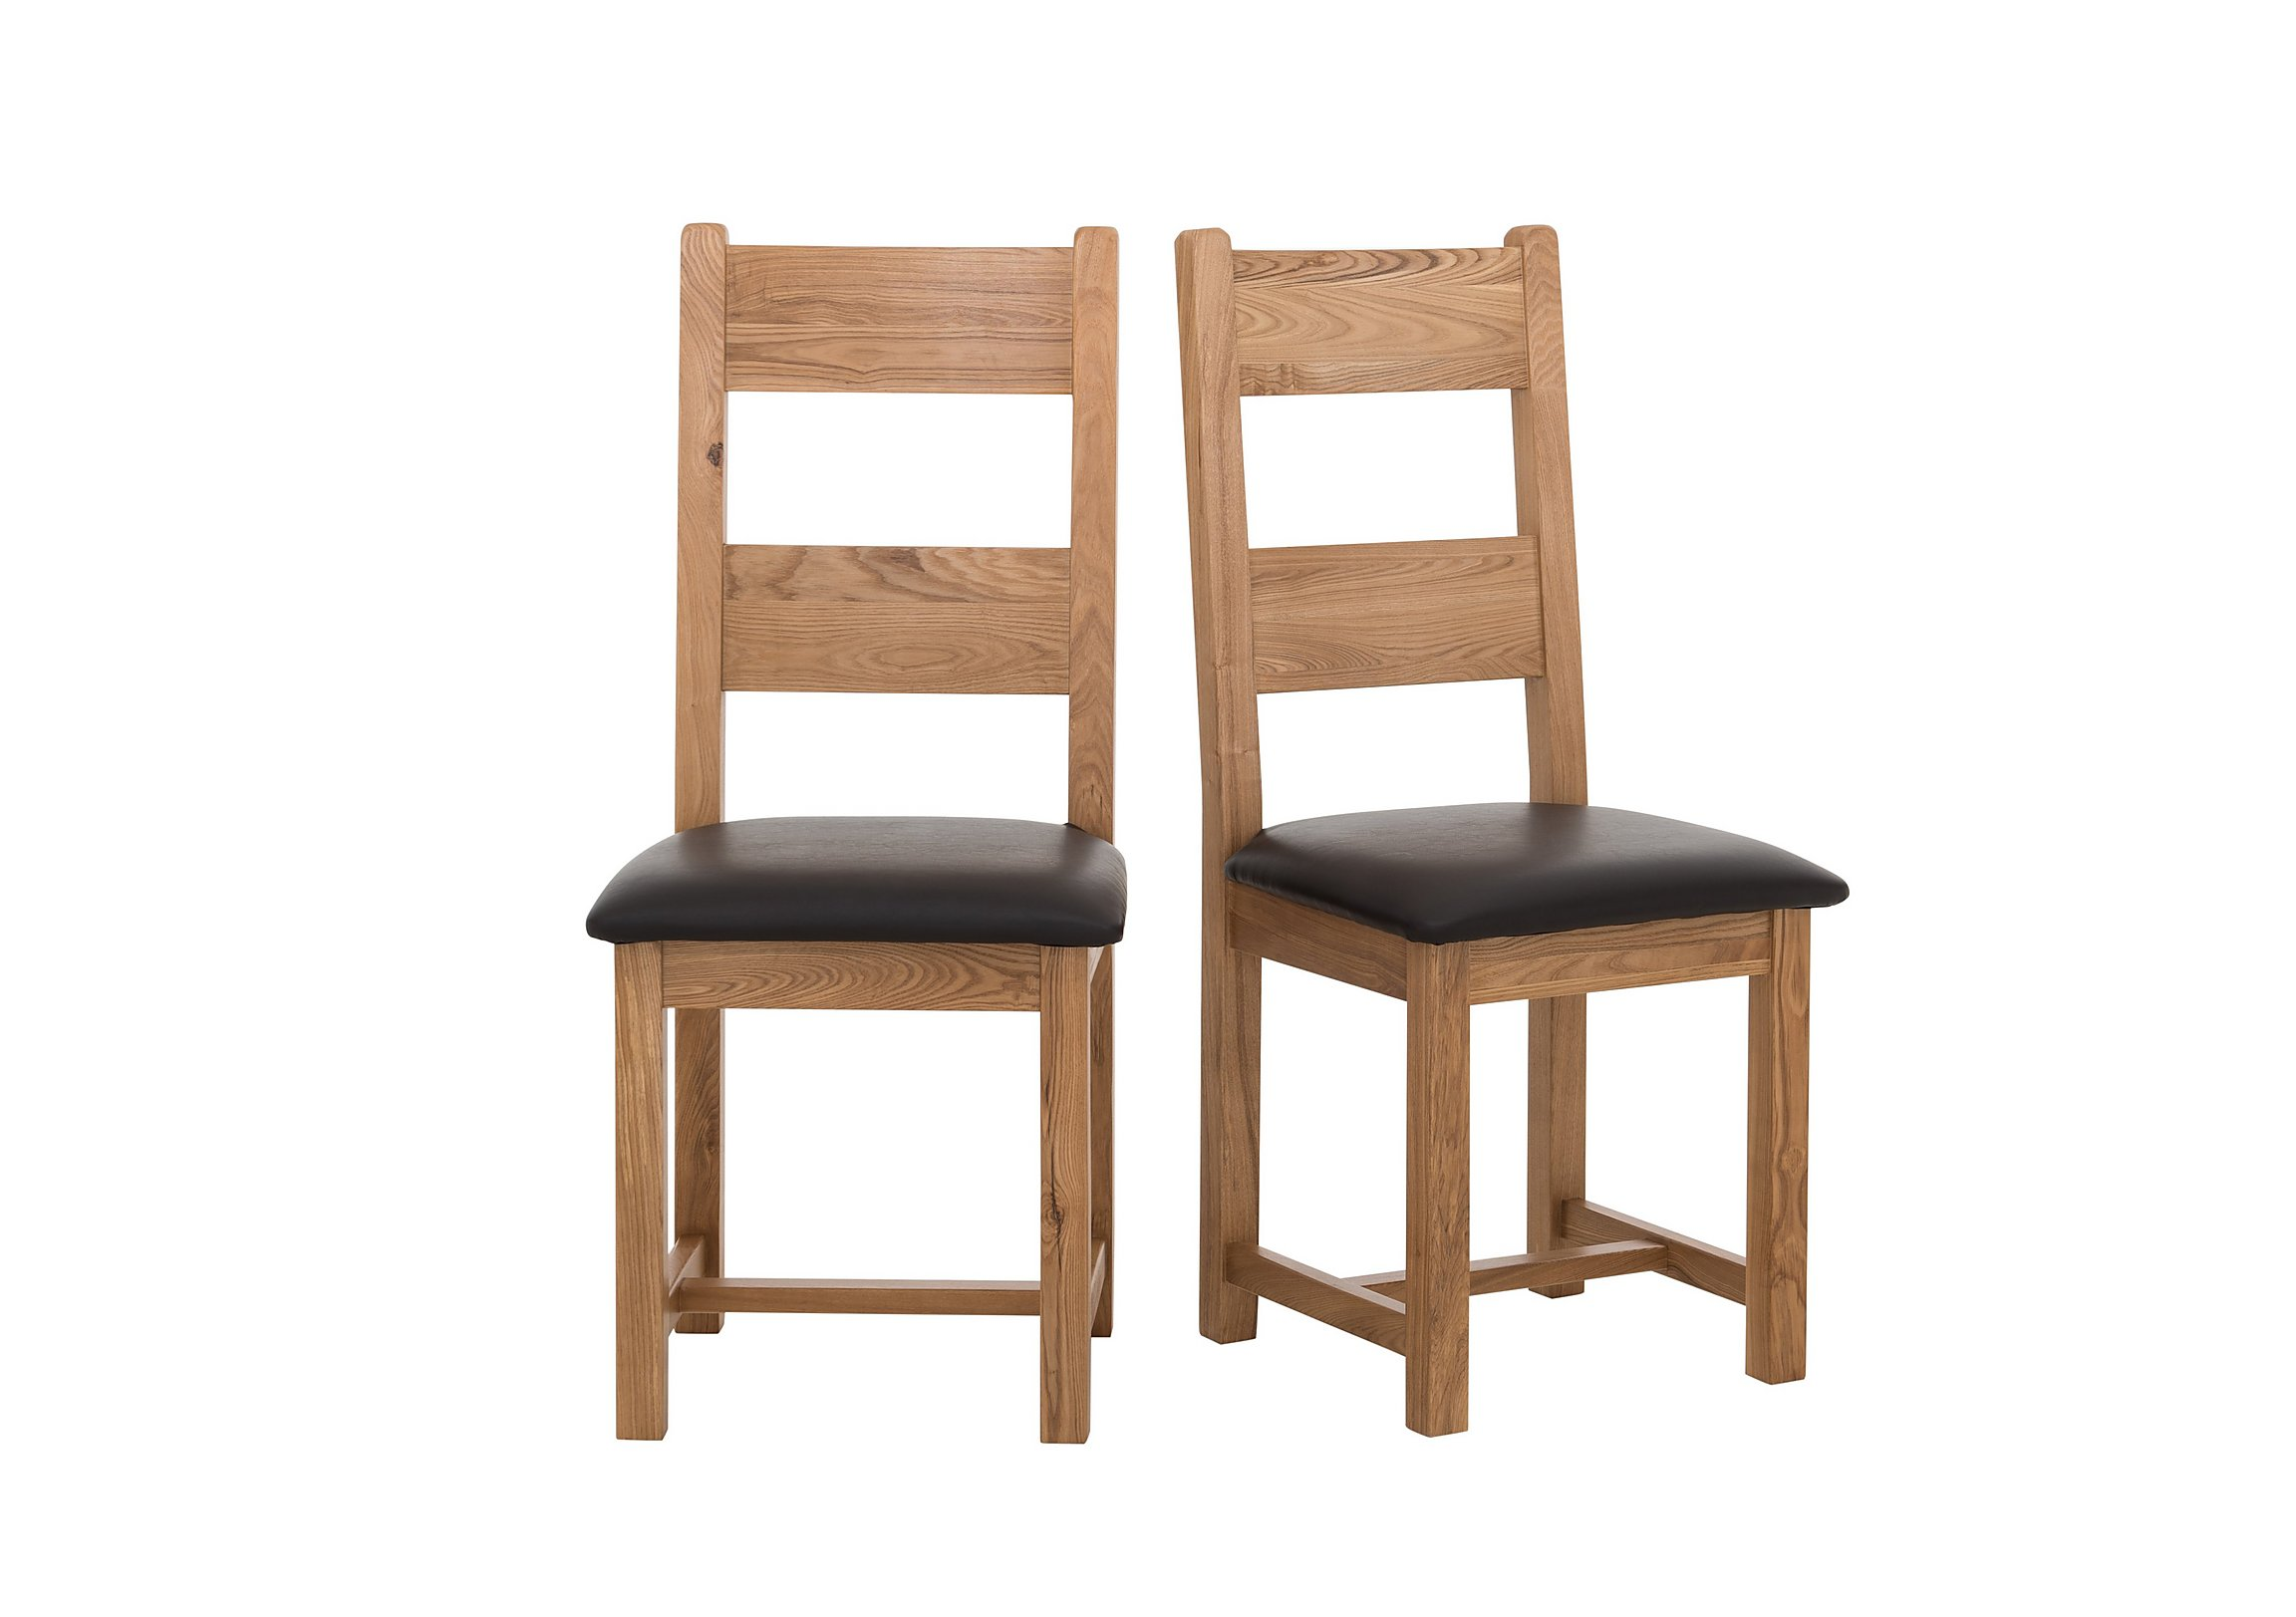 ladder carlton ch tt wooden publish back g chair furniture product chairs direct oak